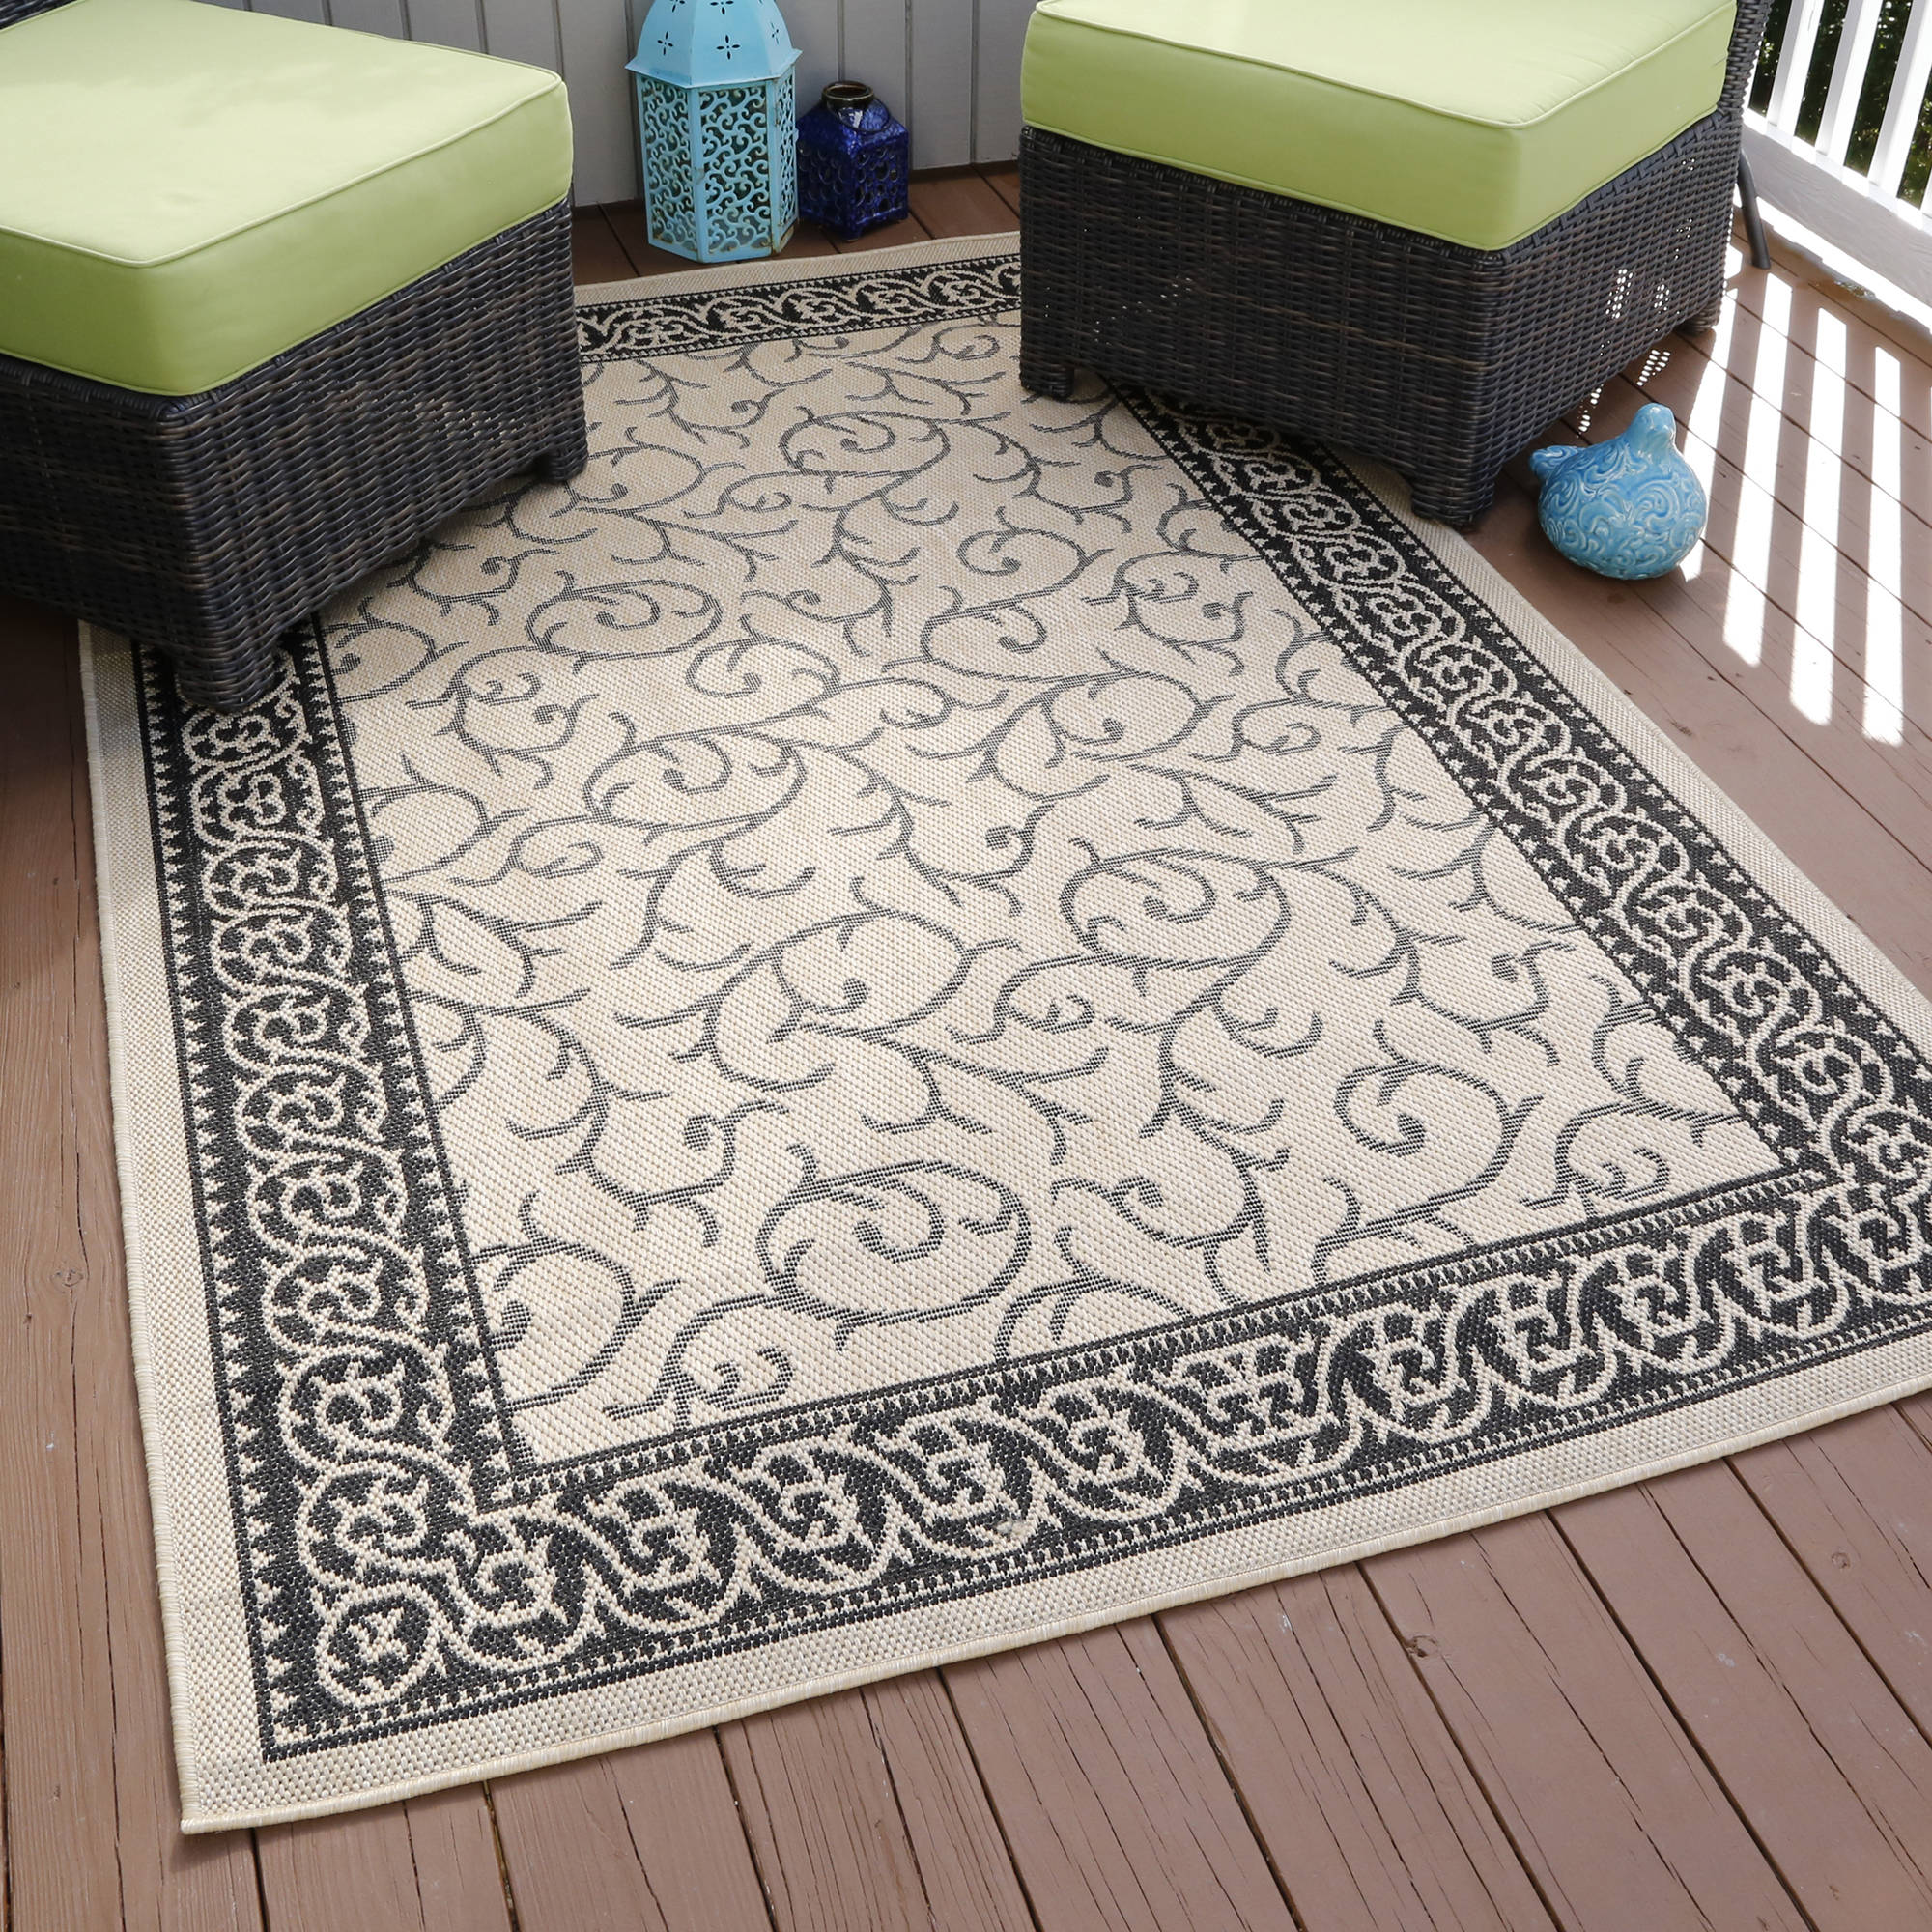 Somerset Home Ornate Vine Indoor/Outdoor Area Rug, Cream, 5' x 7'7""